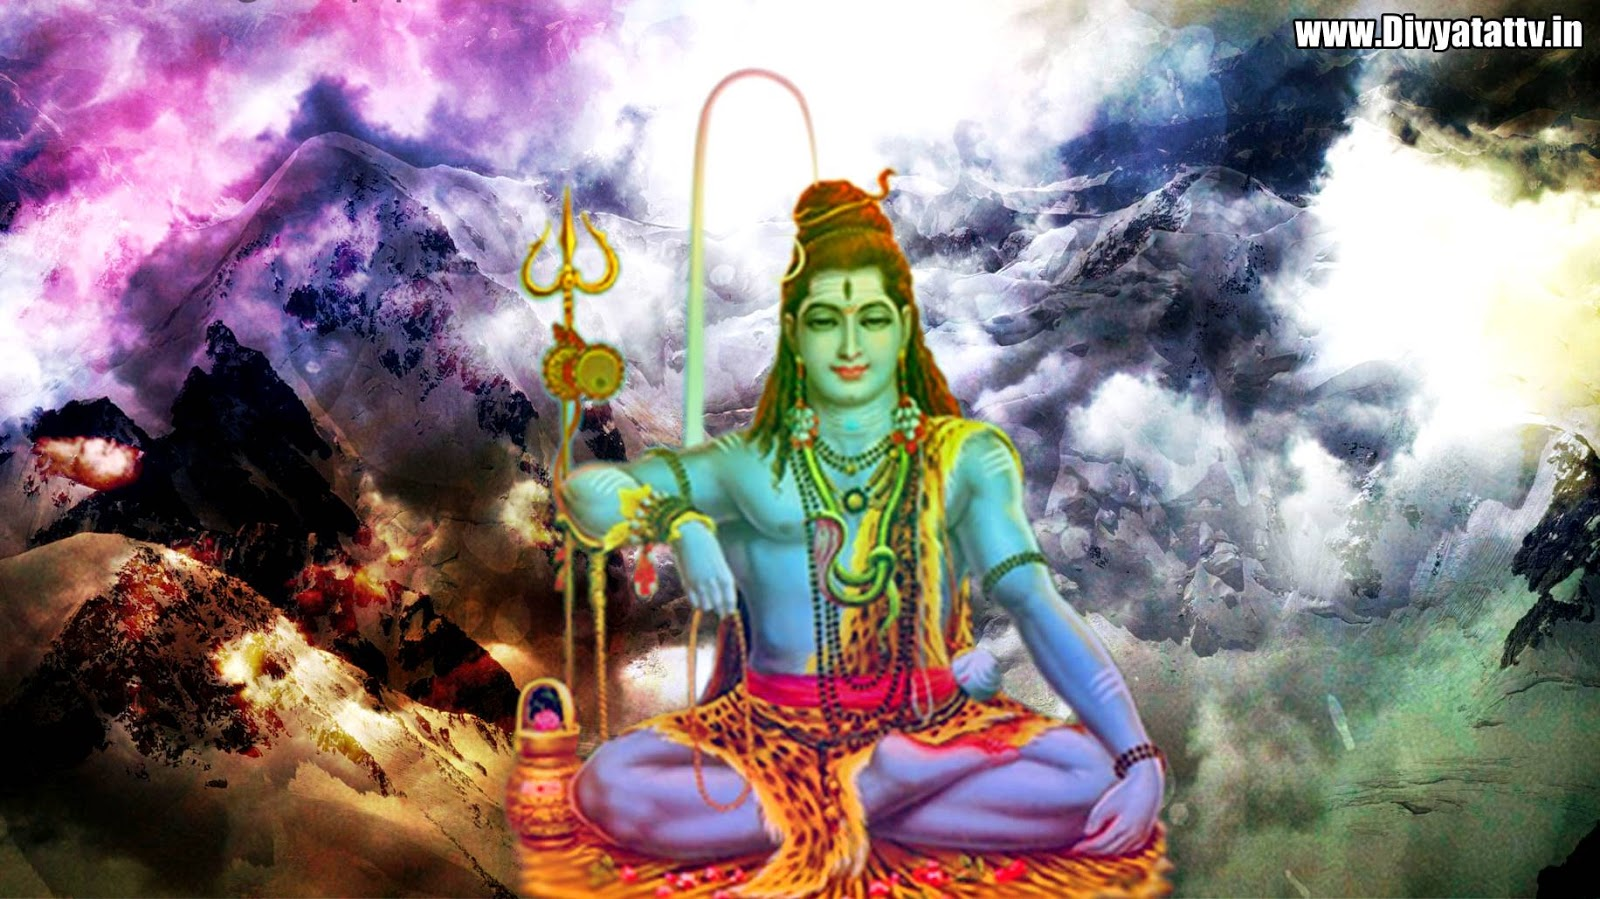 Good Wallpaper Lord Nataraja - shiva-god-wallpaper-lord-shiv-background-hindu-god-india-divyatattva  Gallery_145149.jpg